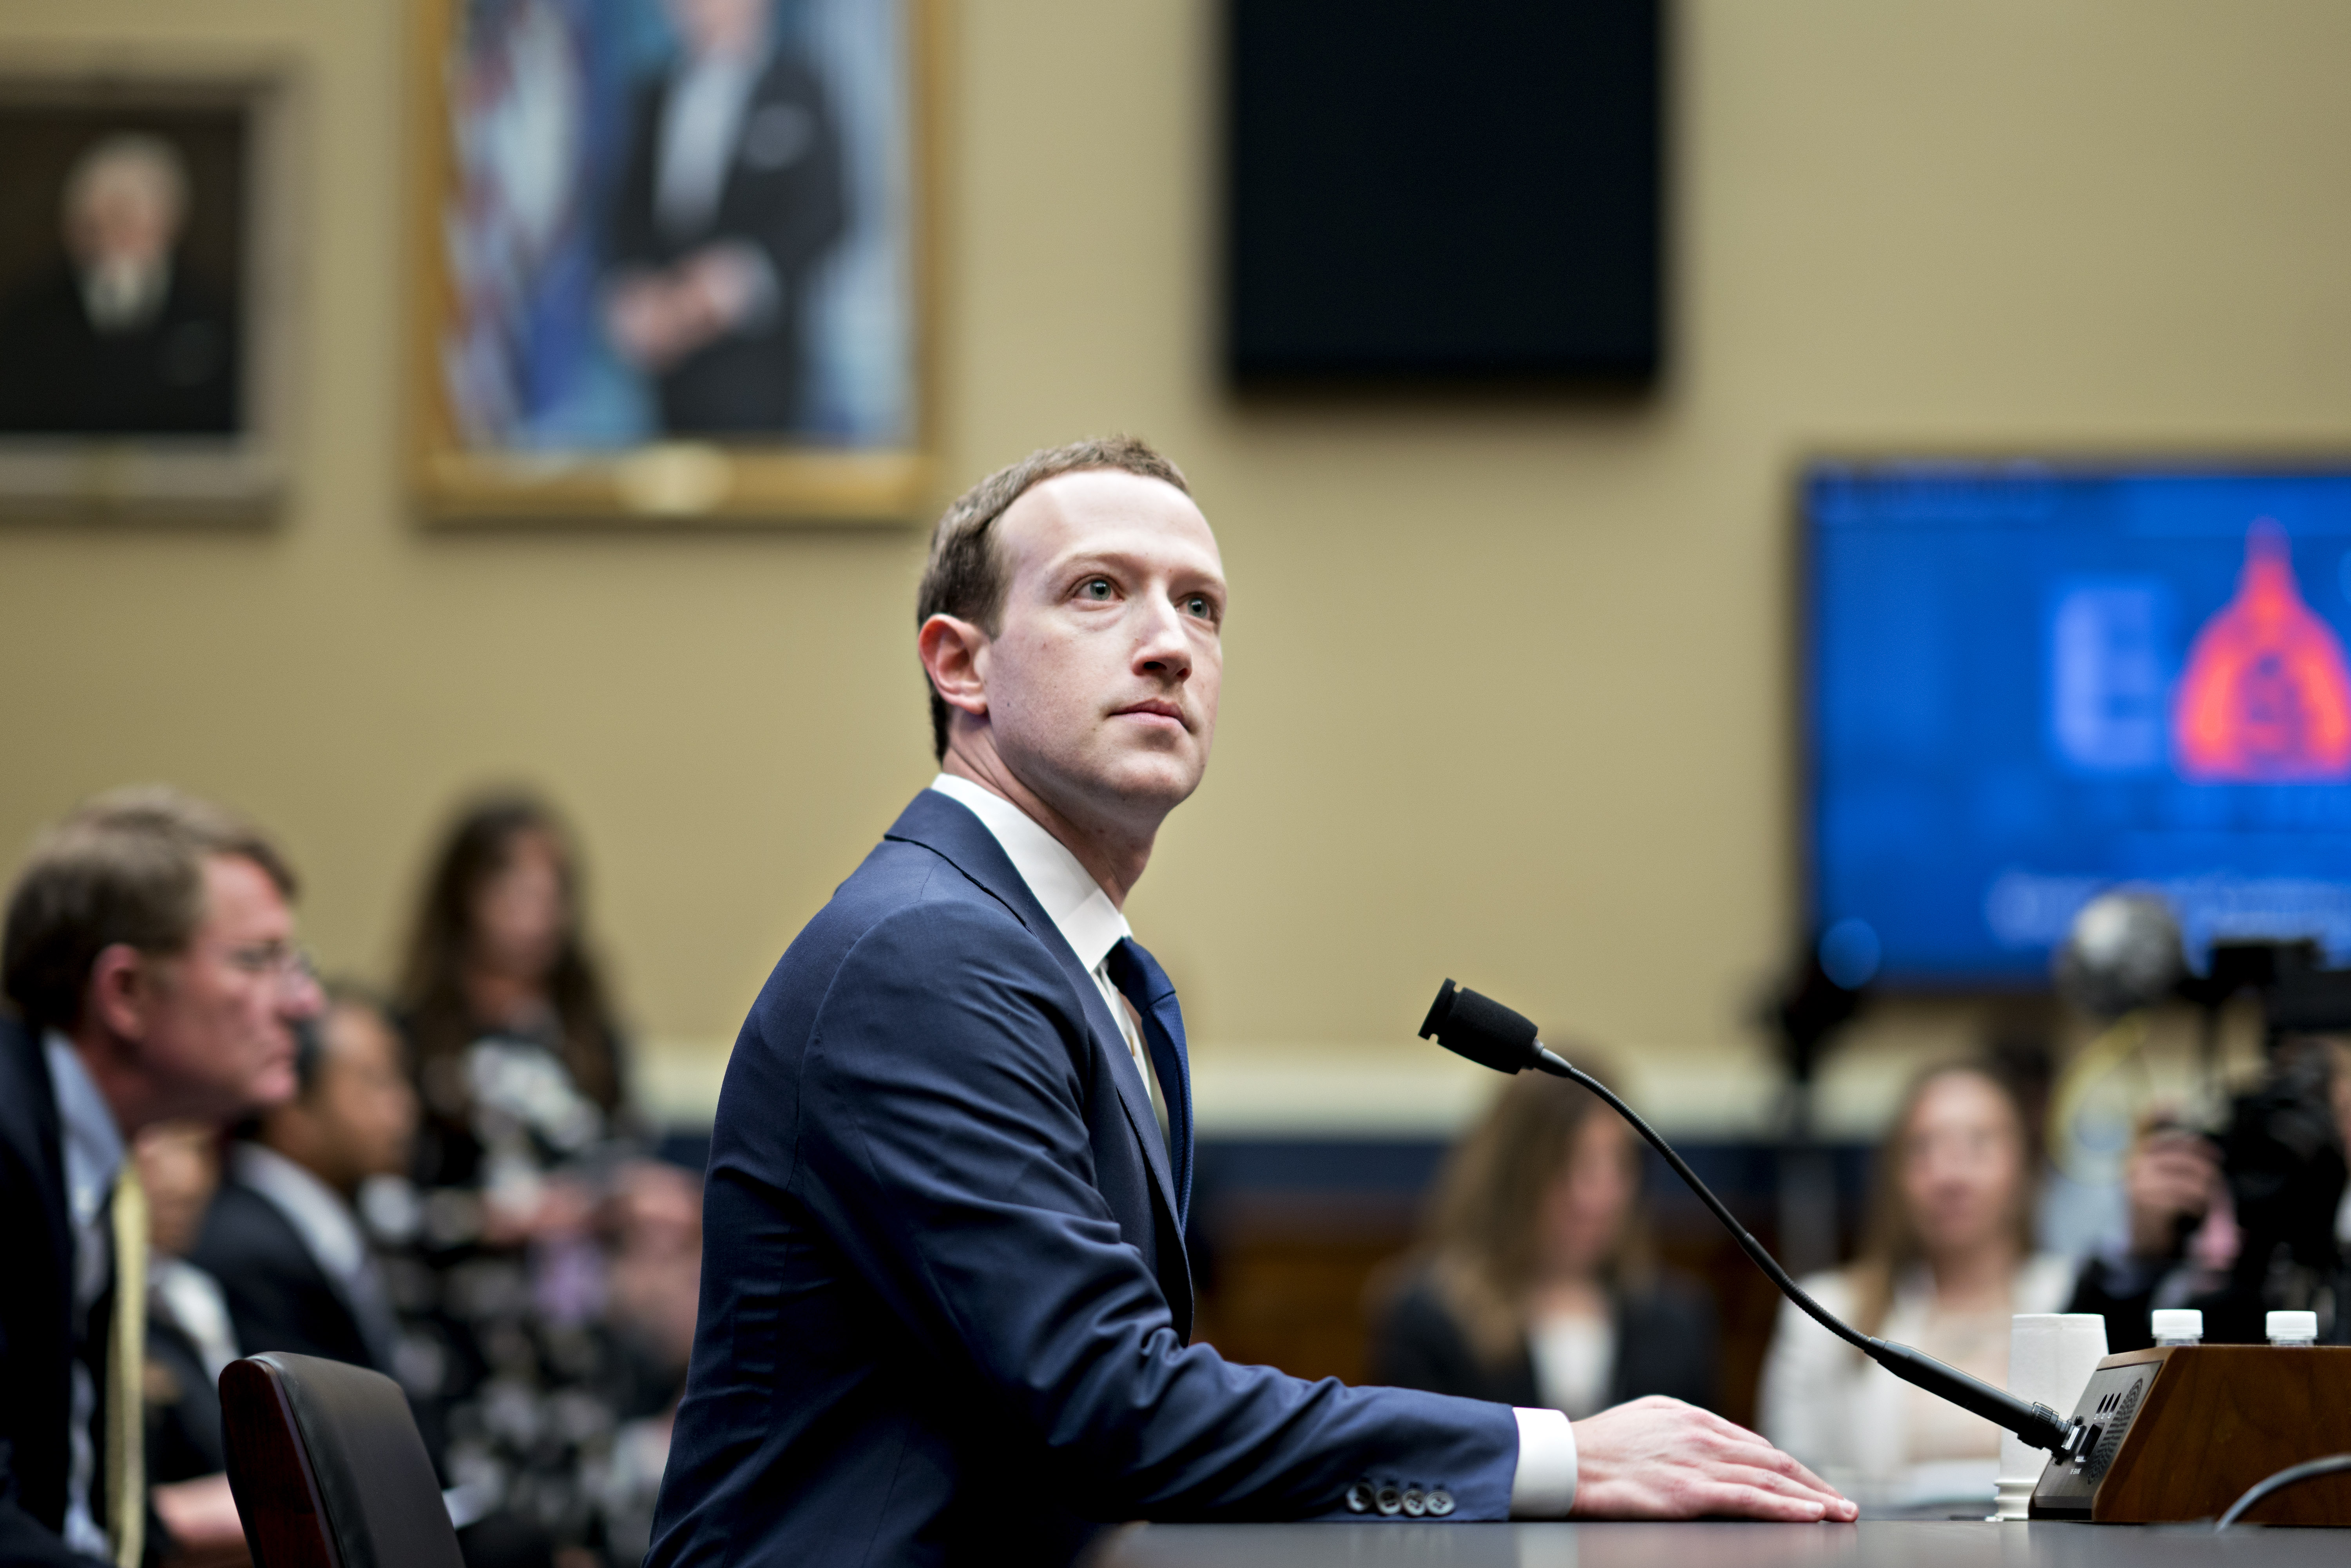 Facebook CEO Mark Zuckerberg waits to give testimony to a House Energy and Commerce Committee hearing.